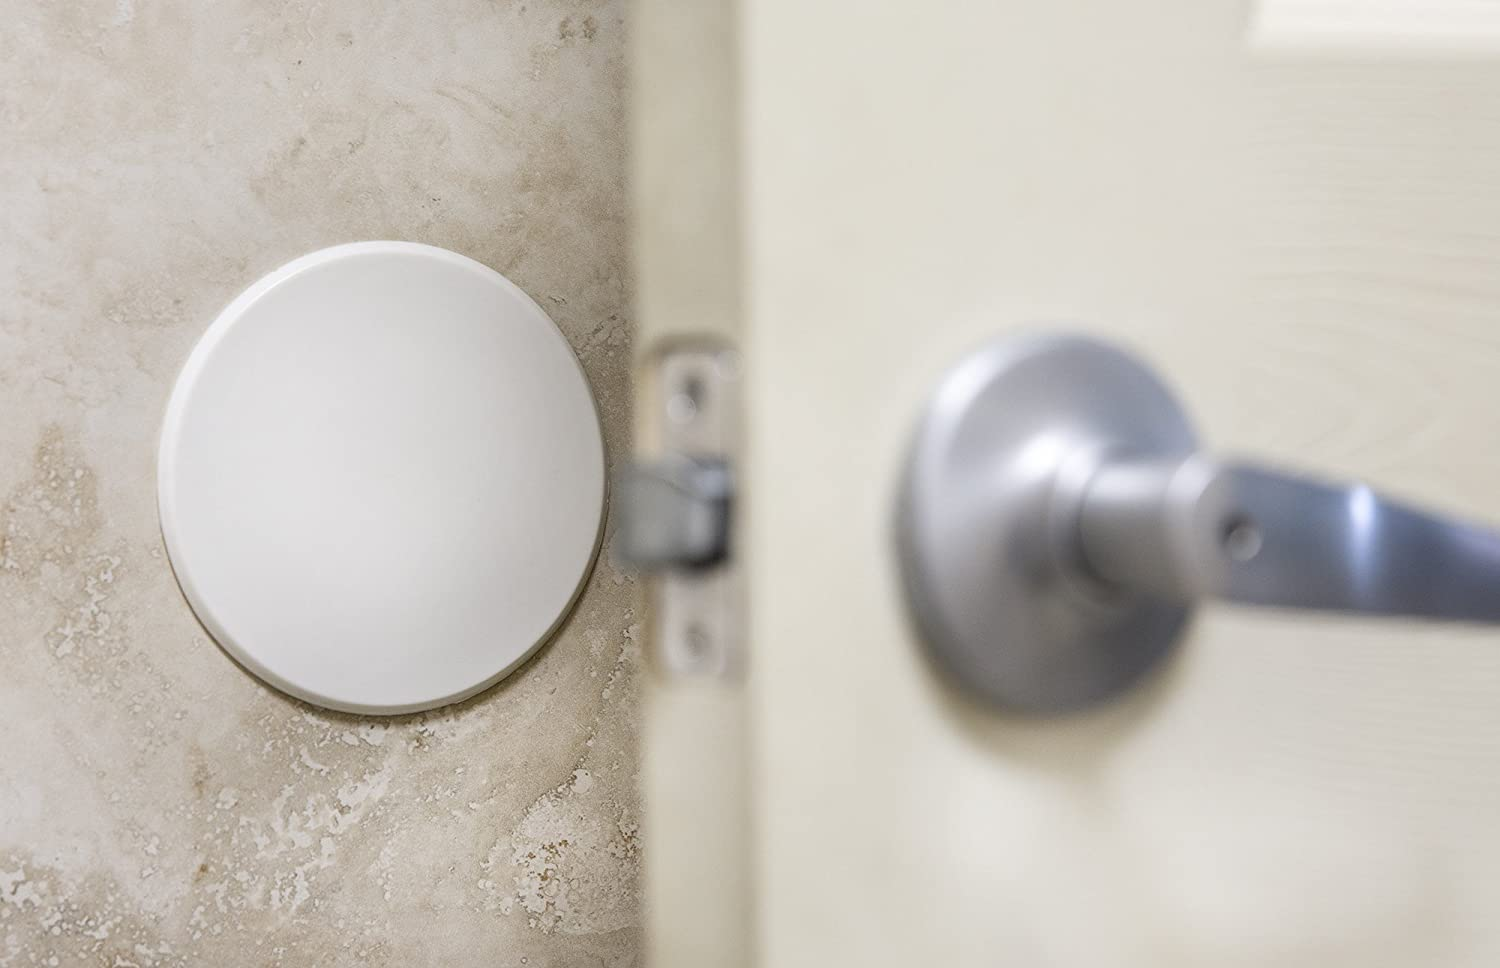 Amazon.com 5  WHITE Door Stop Wall Protector Knob/Handle Guard - SMOOTH Round Self-Adhesive Home Improvement & Amazon.com: 5